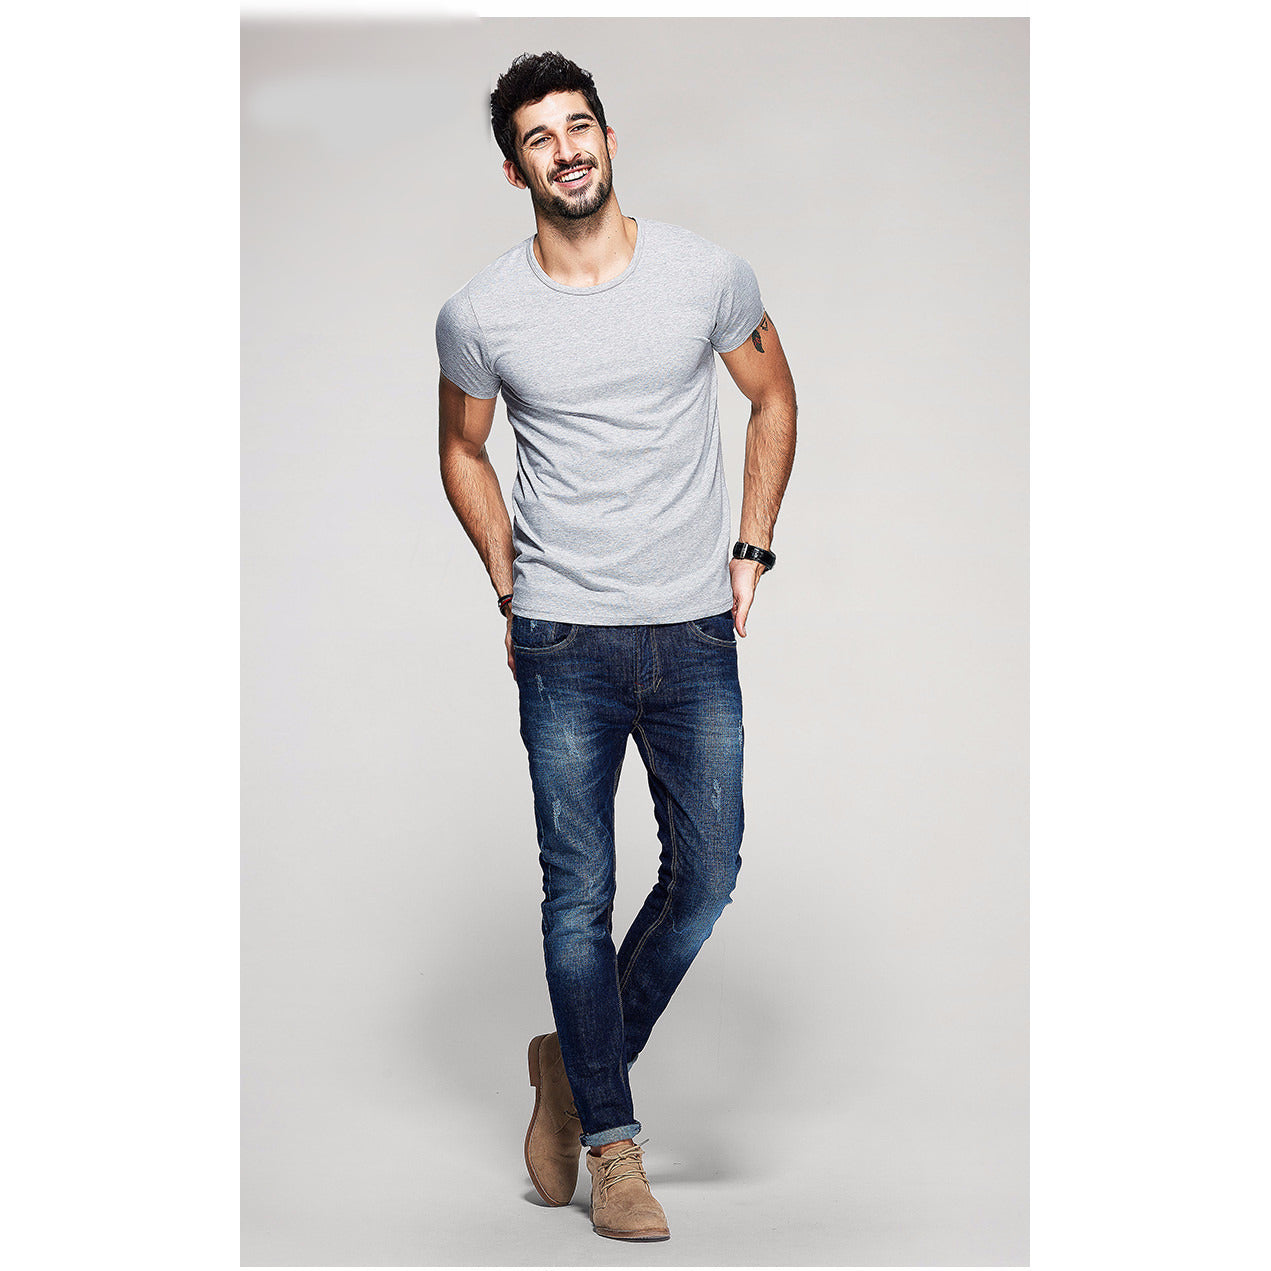 Stone Gray Basic Slim Fit Crew Neck T-Shirt - Haberfasher